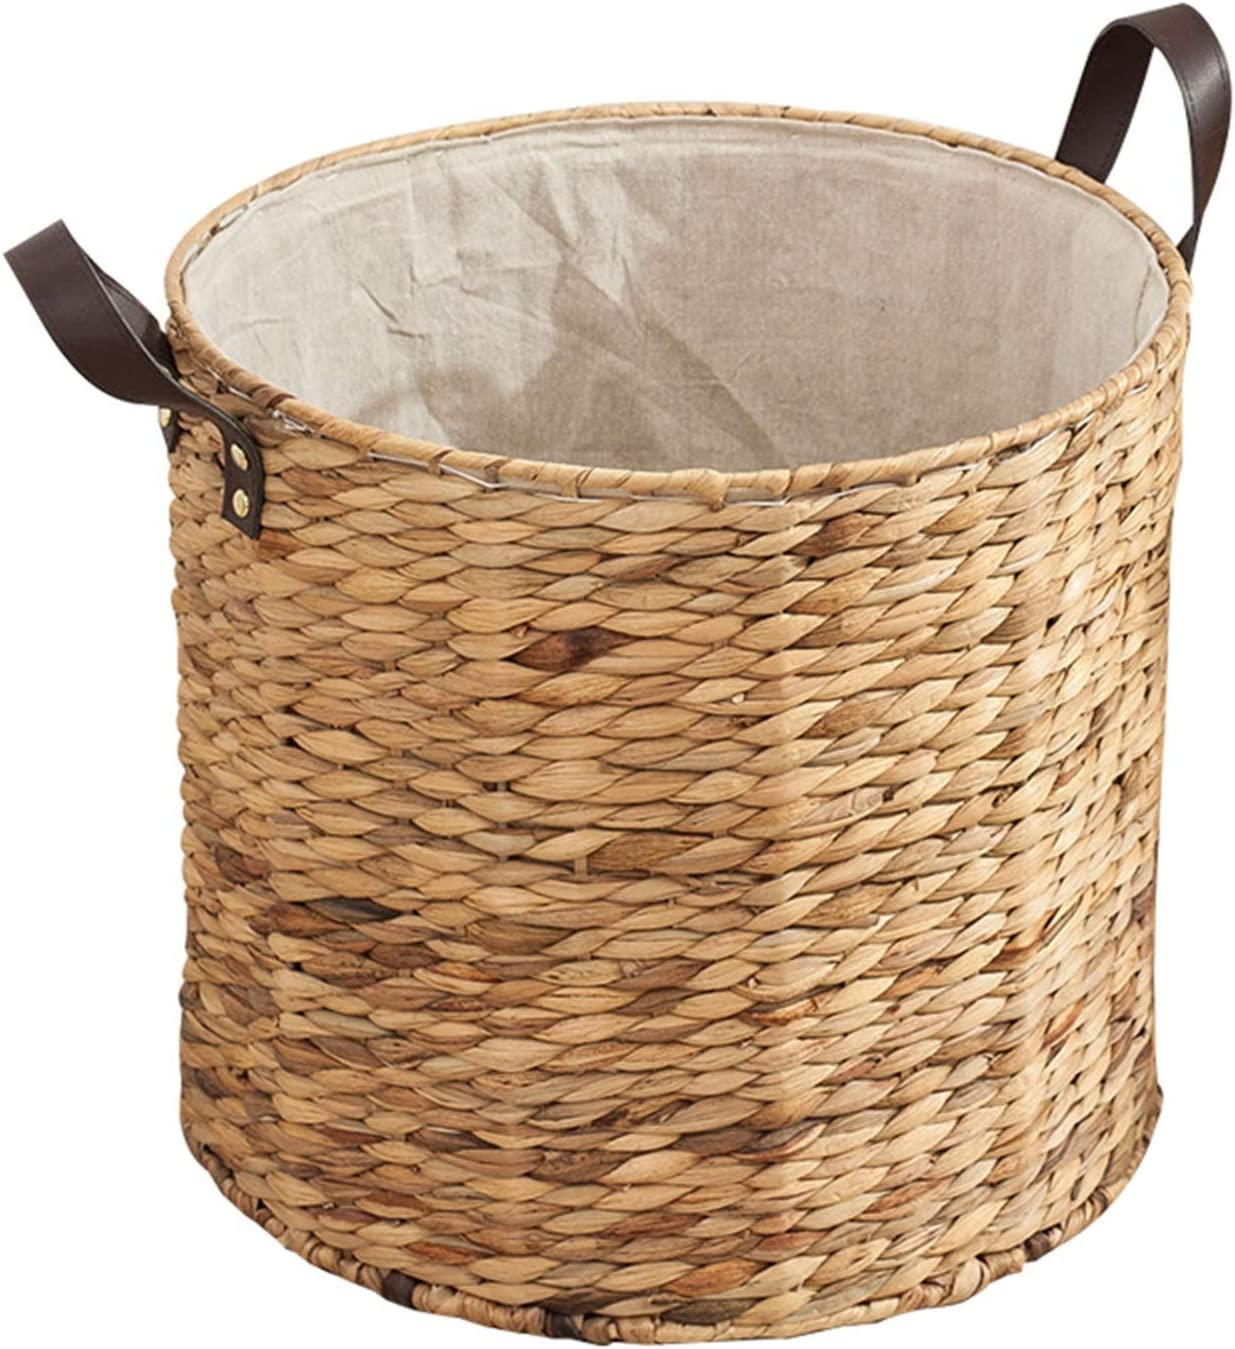 lxm Round Hand-Woven Straw Outstanding Woven Arlington Mall Basket Dirty Clothes Multifunc